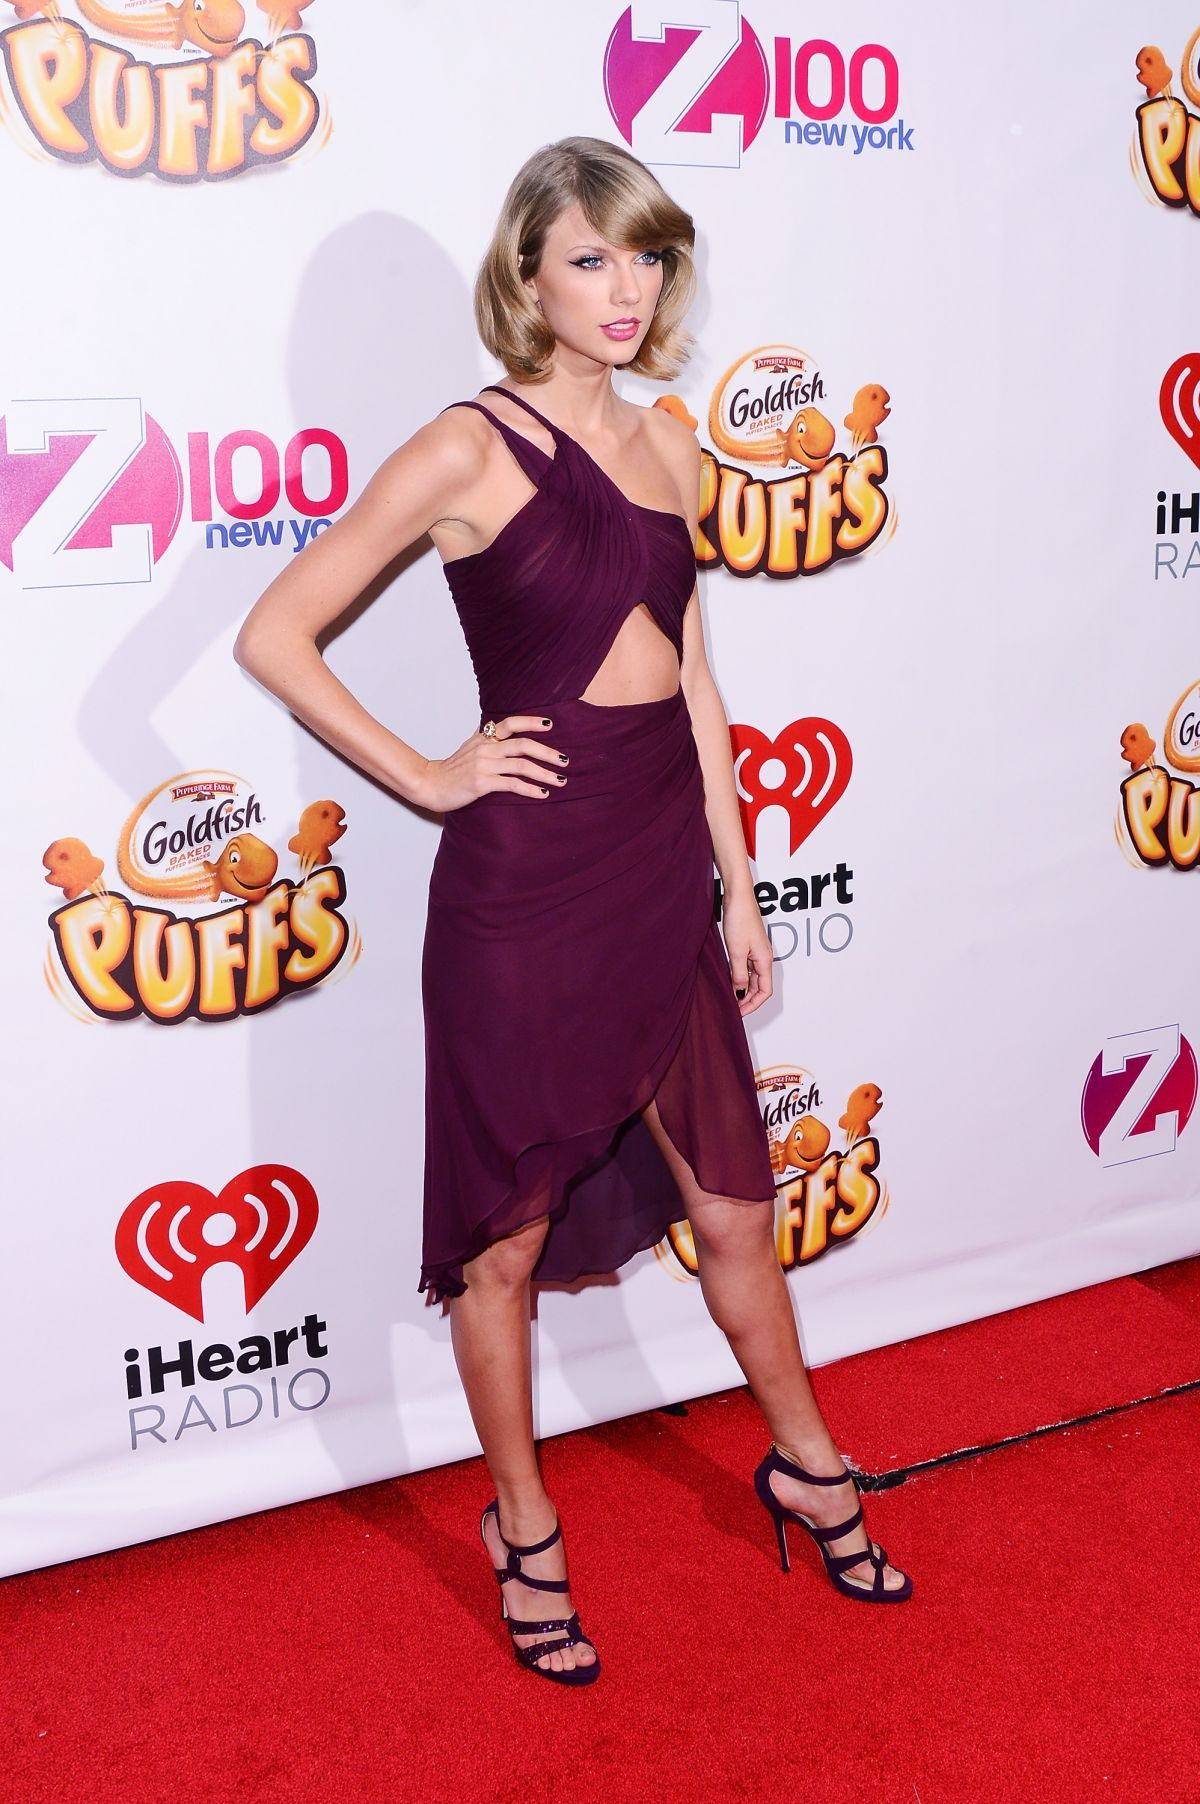 TAYLOR SWIFT at Z100's Jingle Ball 2014 in New York.